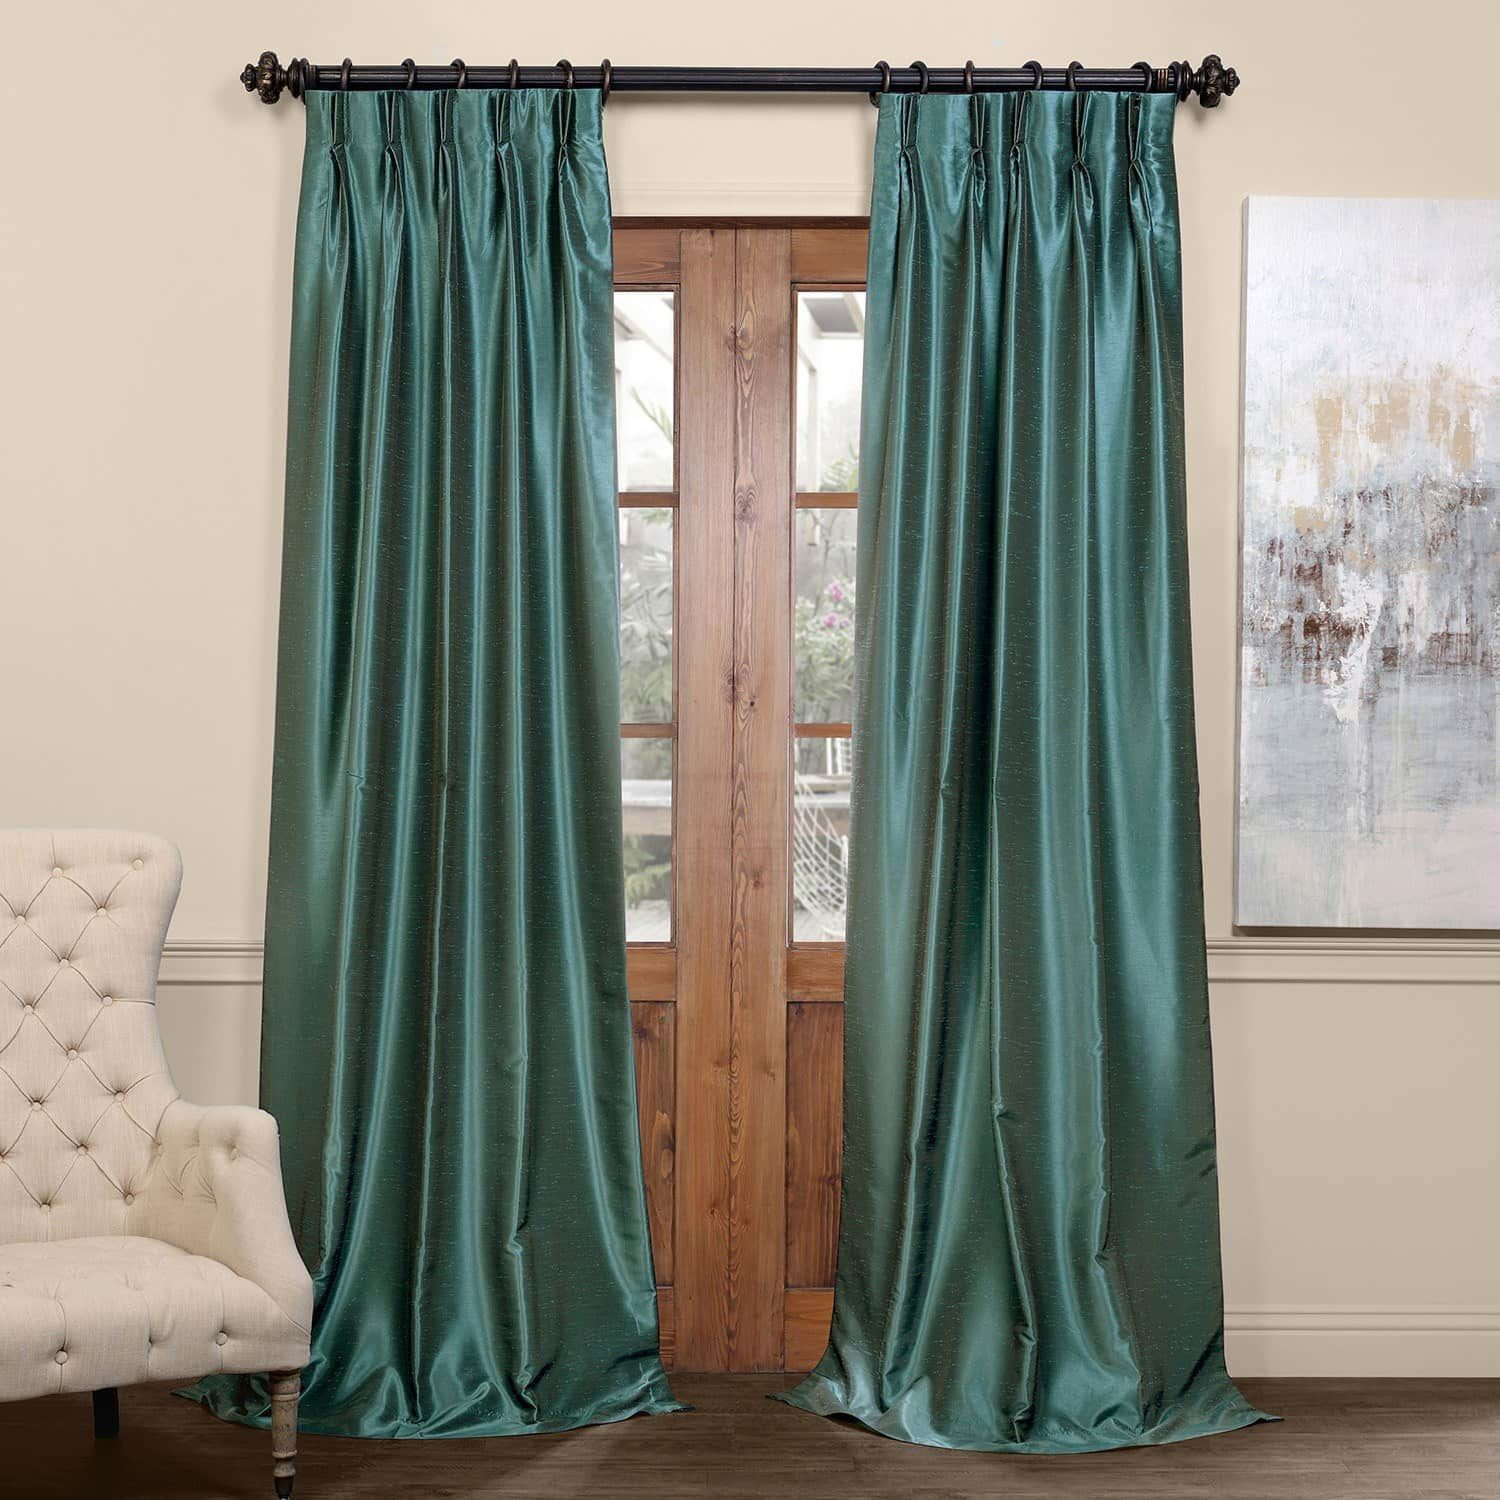 compare fabrics curtains window price dedecor on with fabric shade low blackout curtain designer b modern traders online shoppingbuy font prices jacquard wholesalers